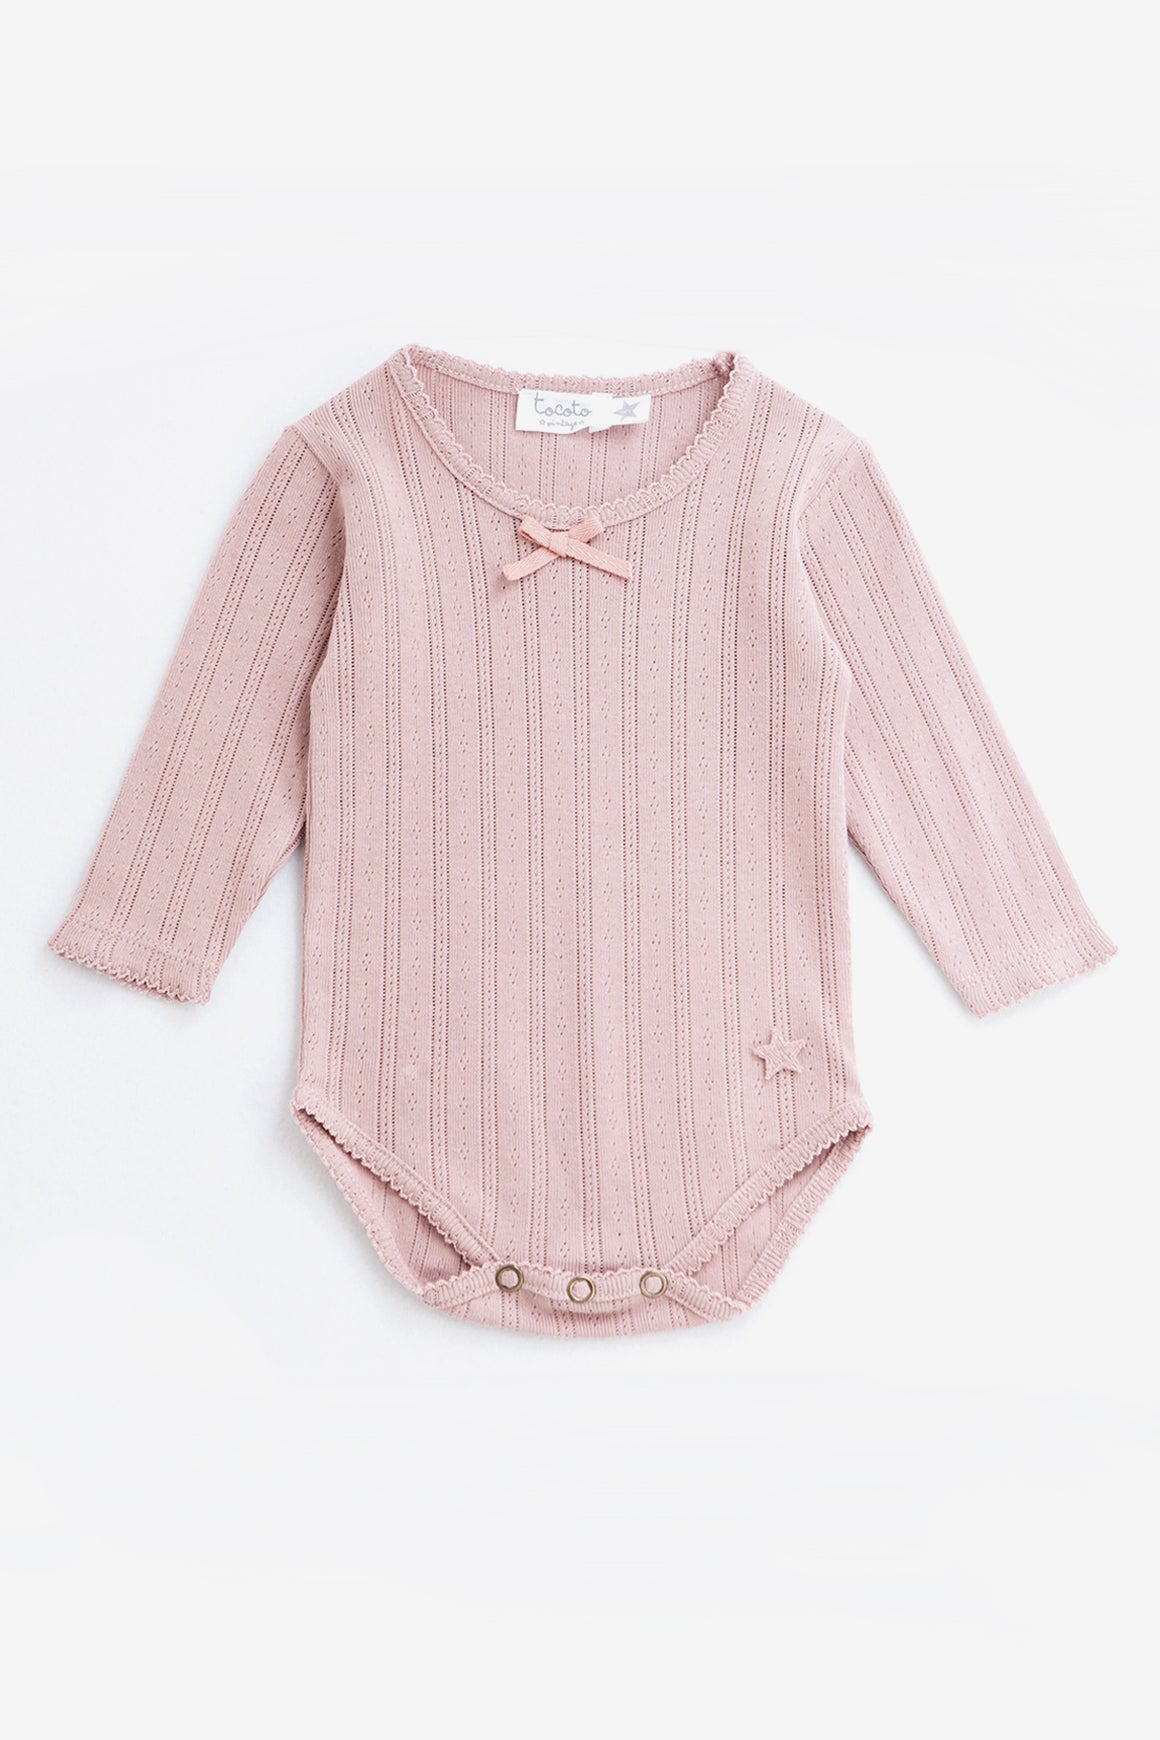 Tocoto Vintage Baby Girls Bodysuit